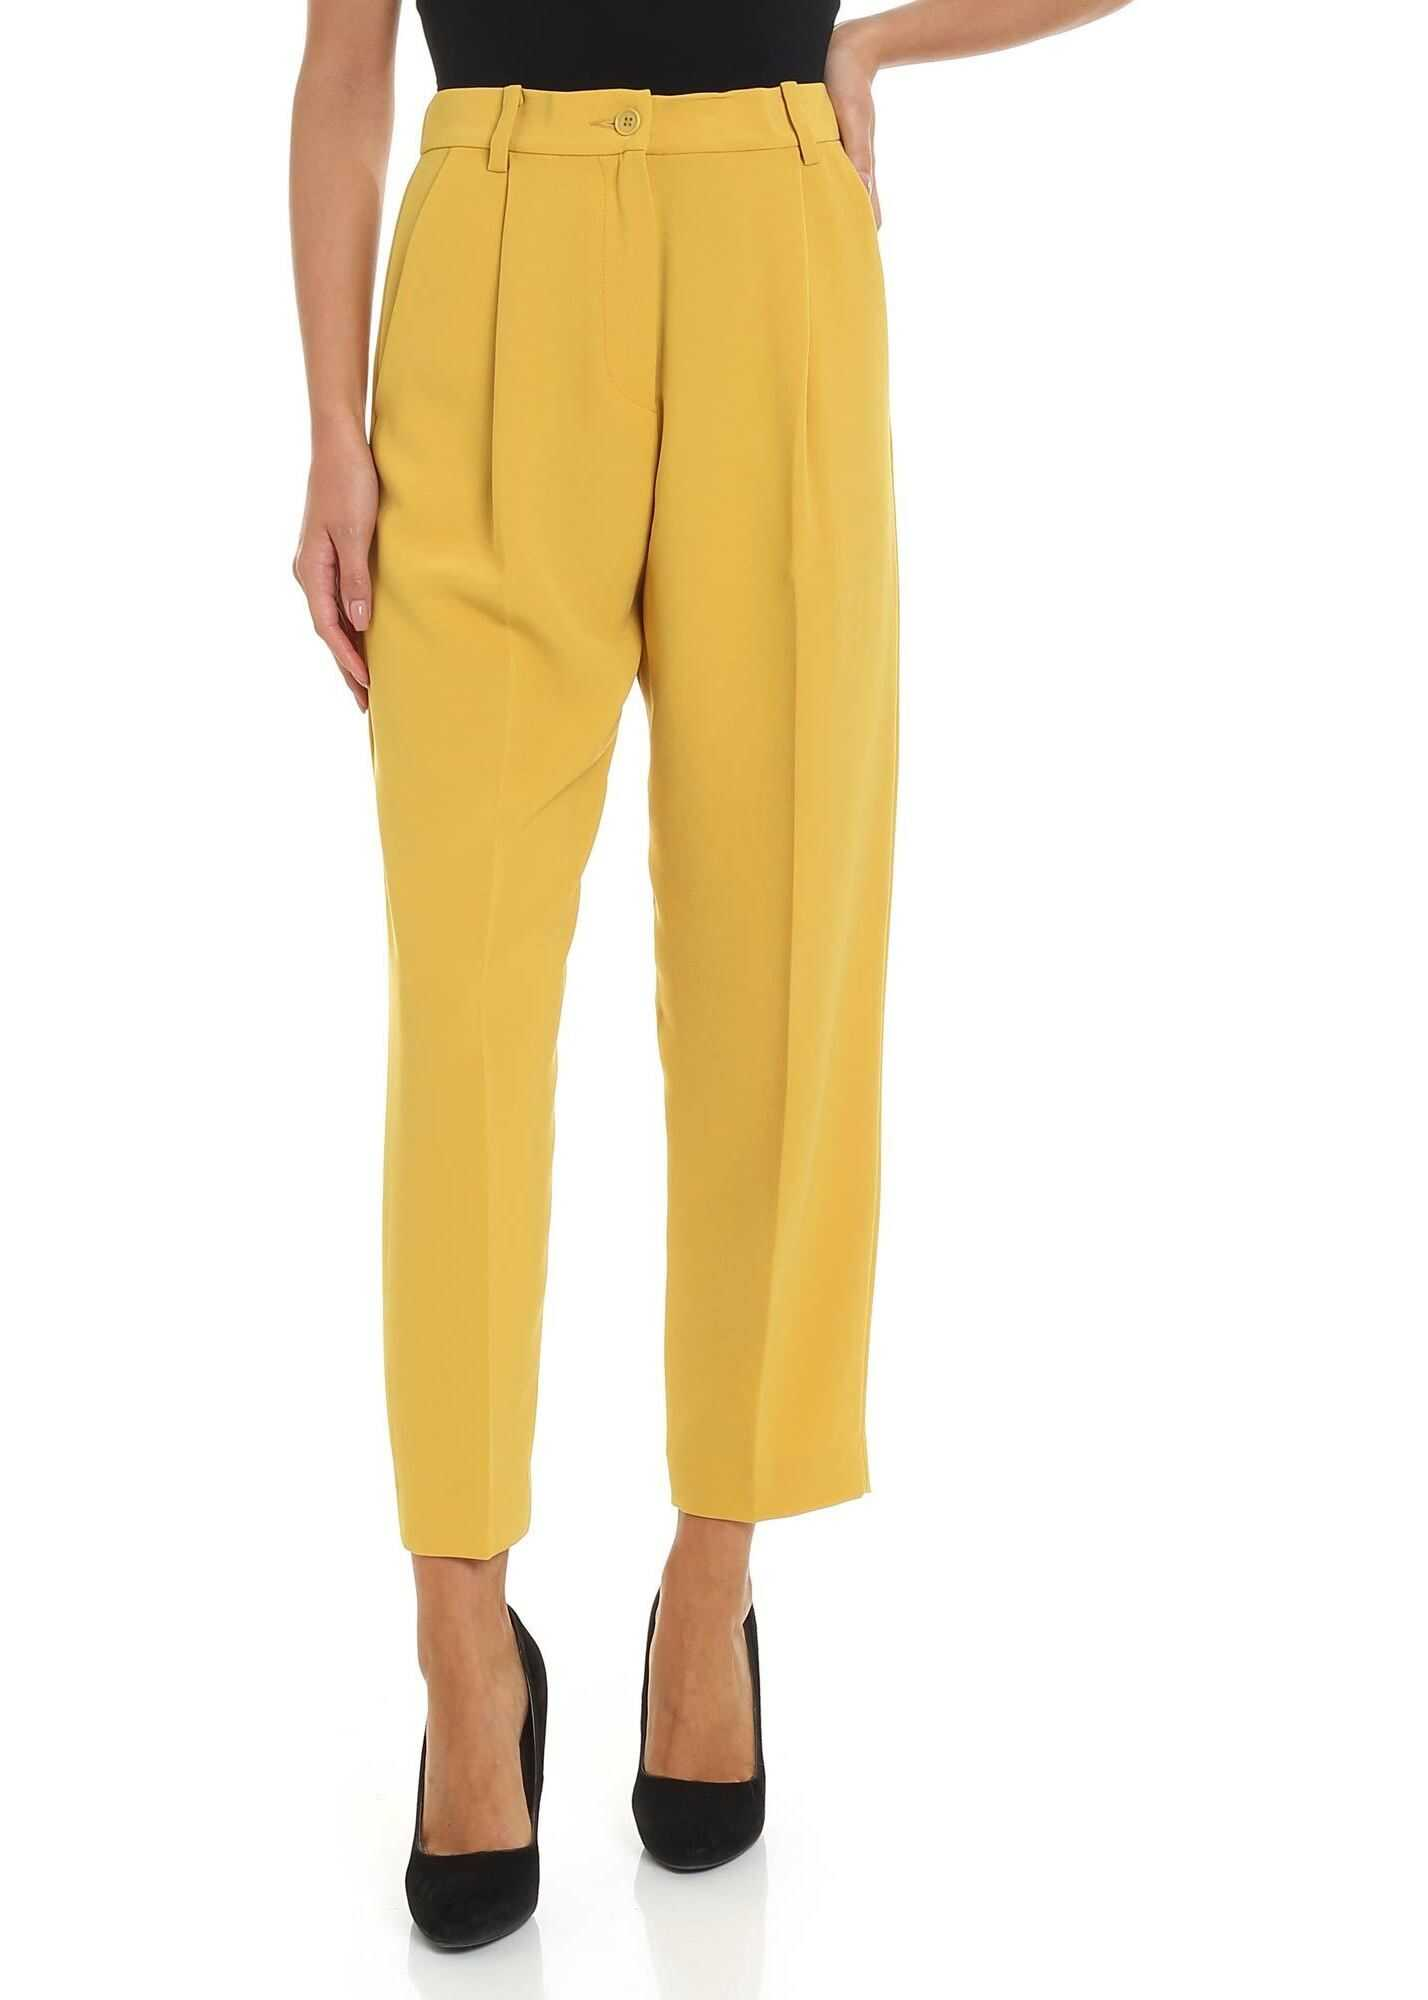 P.A.R.O.S.H. Ocher Color Crop Trousers Yellow